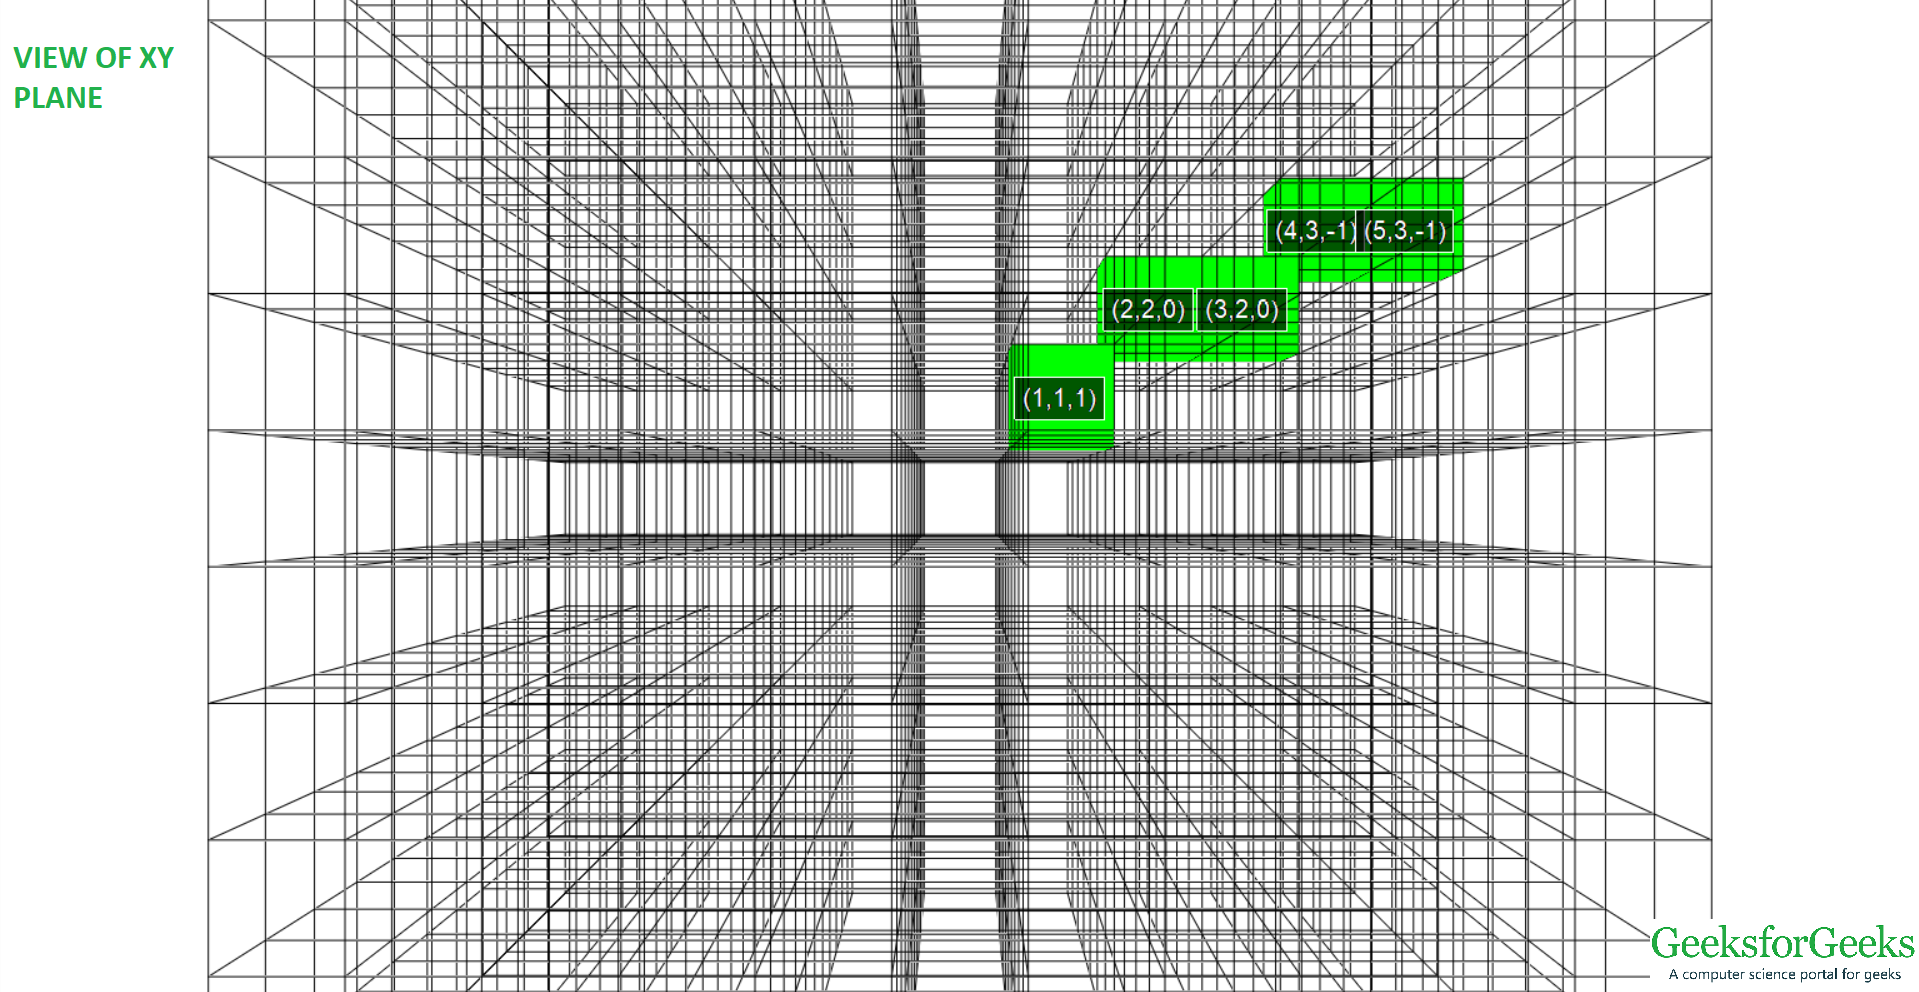 View of 3D line from (-1, 1, 1) to (5, 3, -1) of XY plane